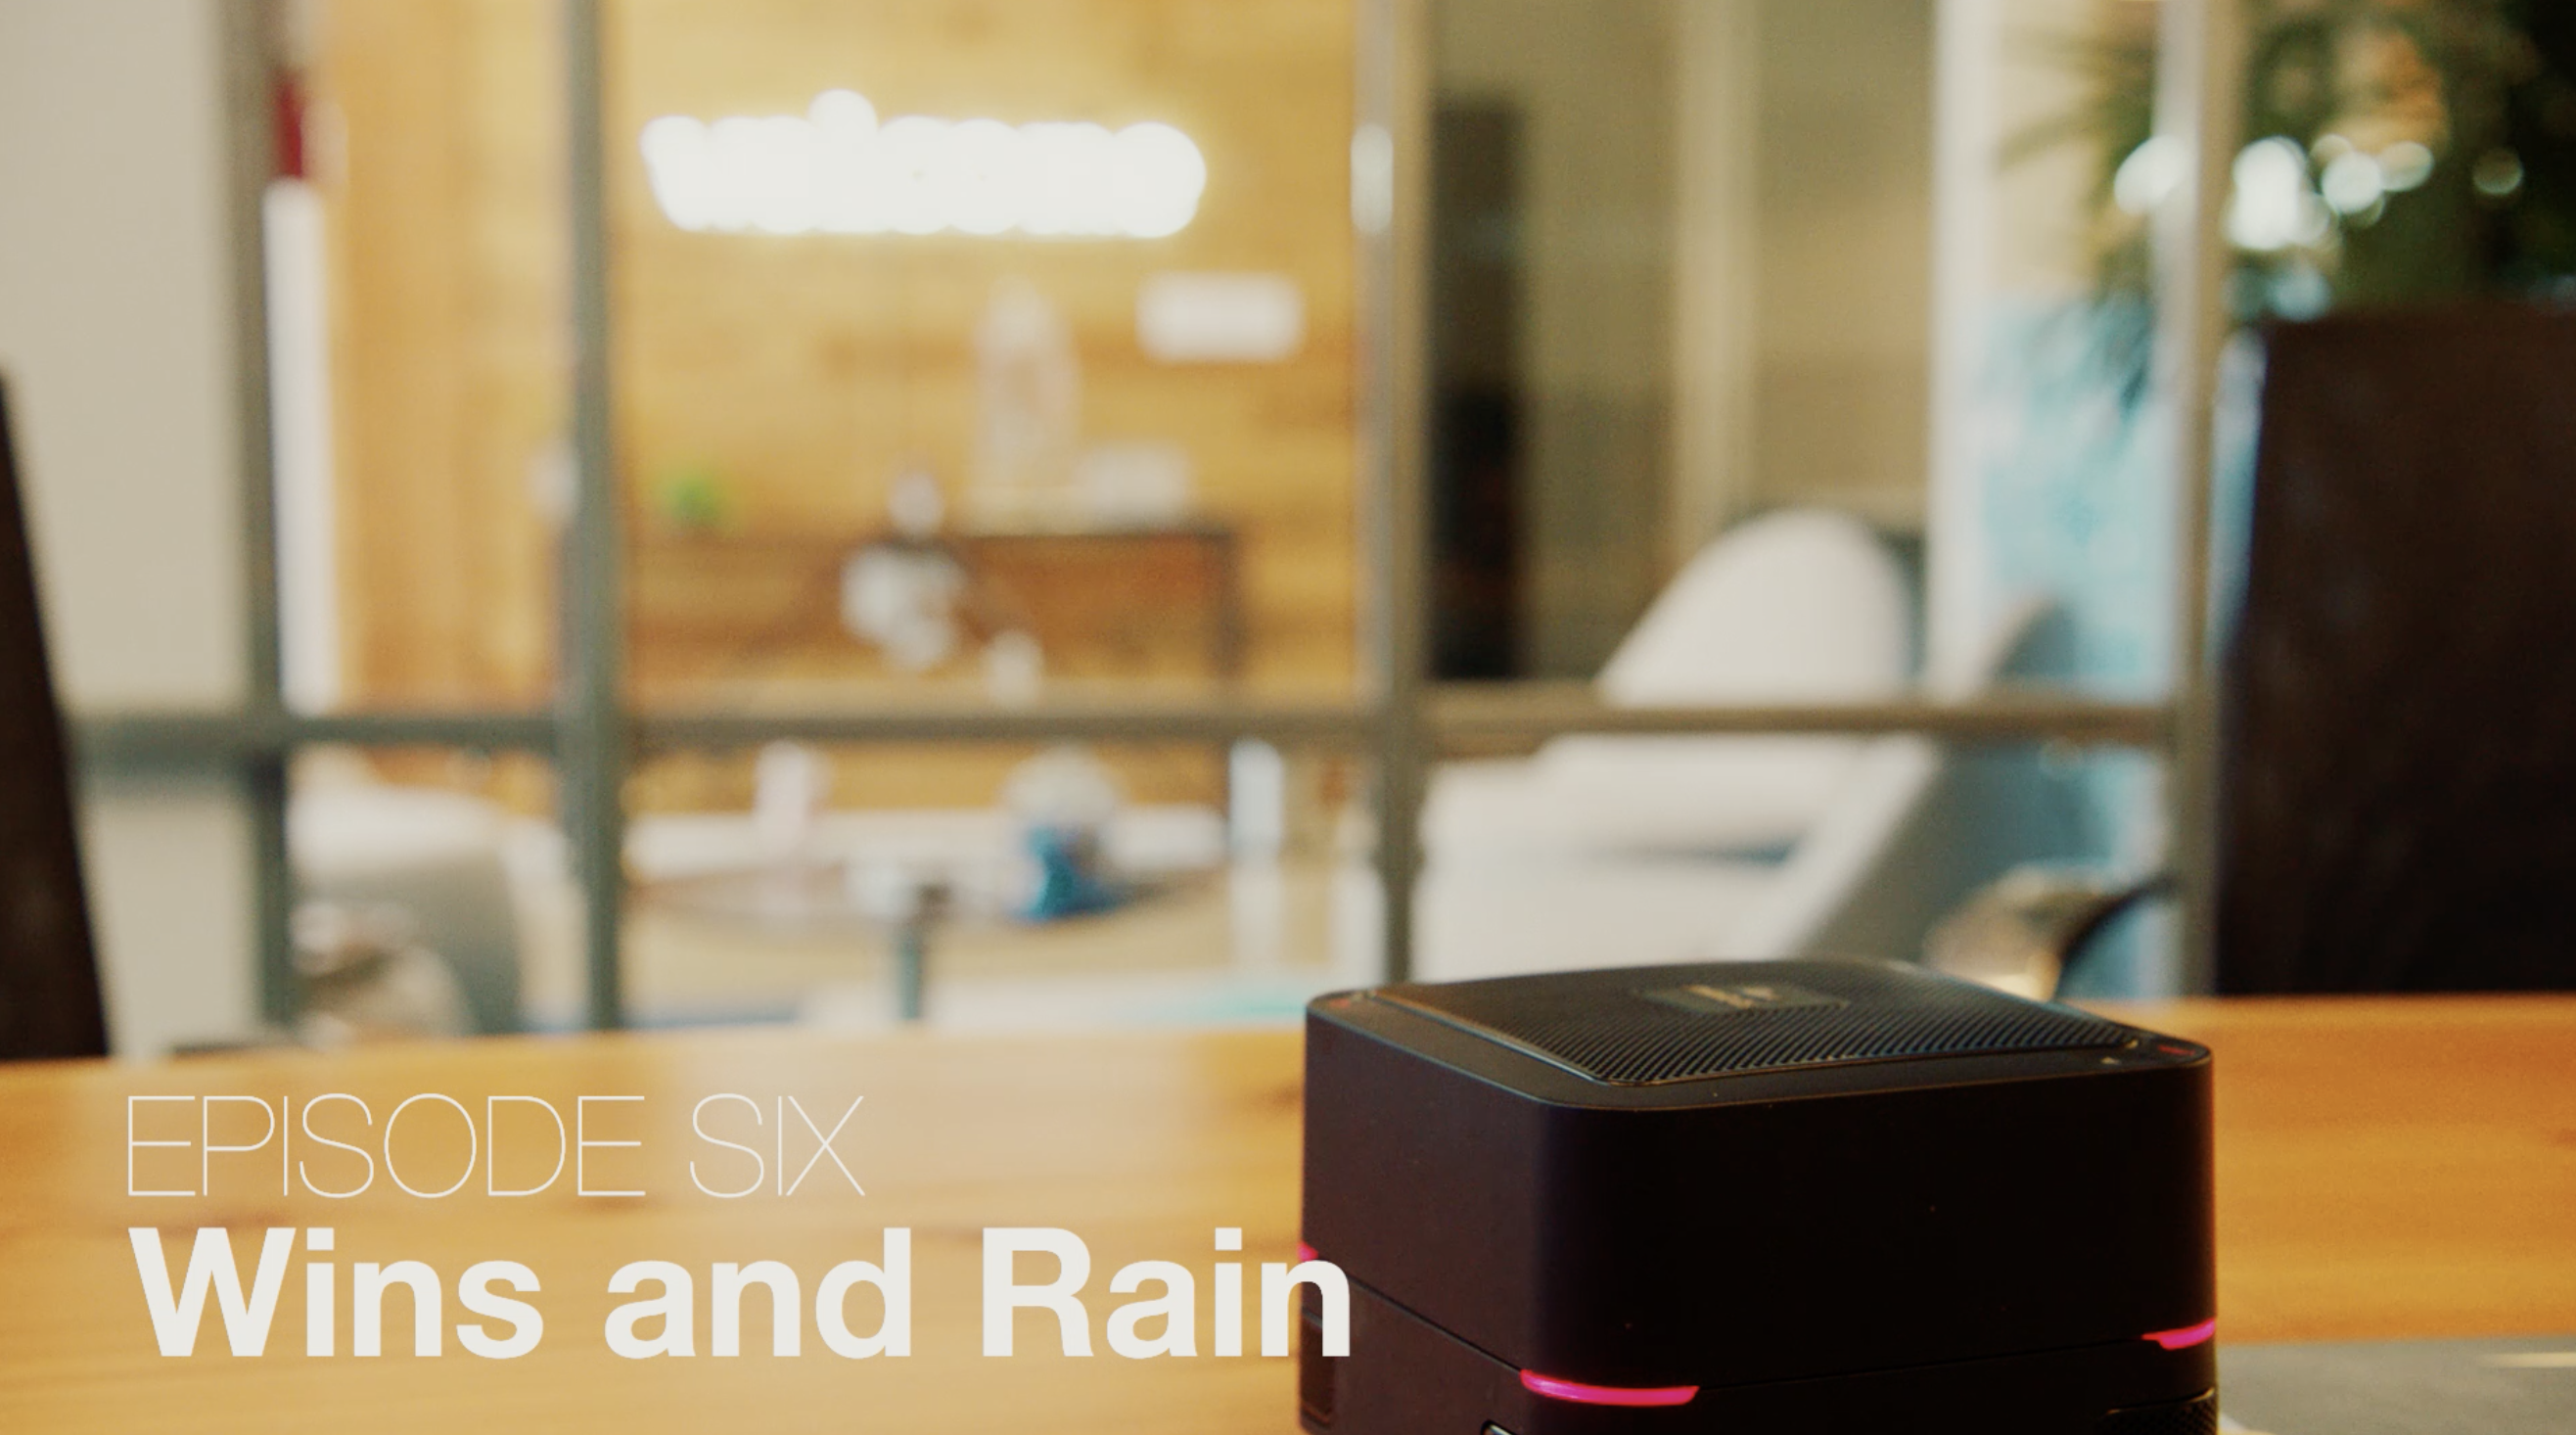 Ep 06 - Wins and Rain   Bubbleproof